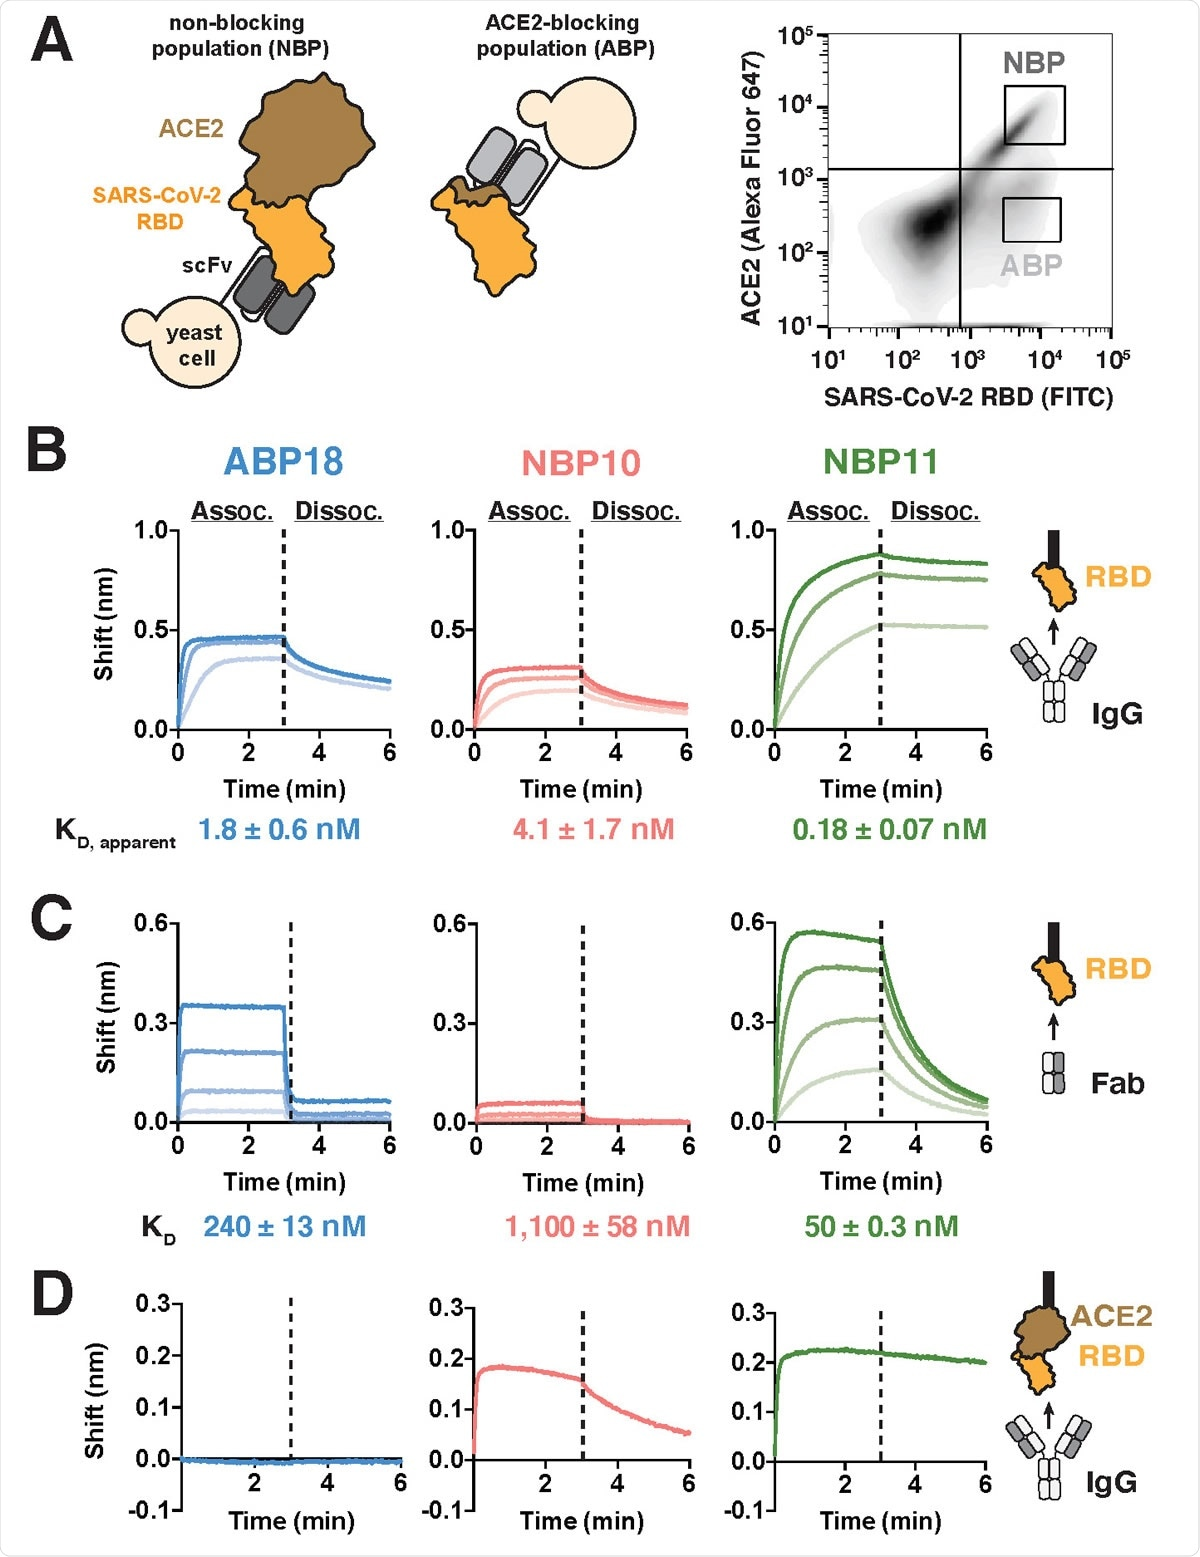 A human naïve antibody library yields antibodies targeting the SARS-CoV-2 RBD (A) Left, selection scheme to isolate an ACE2-blocking population (ABP) and a nonblocking population (NBP) of antibodies. Right, flow cytometry panel of yeast display library with gates used to isolate the ABP and NBP. (B-C) Binding to SARS-CoV-2 RBD-coated BLI biosensors show substantial differences between (B) IgG antibodies (100, 33.3, and 11.1 nM) and (C) Fab antibody fragments (ABP18/NBP11: 500, 167, 56, 18 nM; NBP10: 720, 240, 80, 27 nM). Higher antibody concentrations are indicated with thicker lines. (D) Binding of 100 nM IgG antibodies to BLI biosensors coated with ACE2:RBD complex shows that NBP10 and NBP11 IgG retain binding while ABP18 shows no binding, consistent with ACE2-blocking activity.